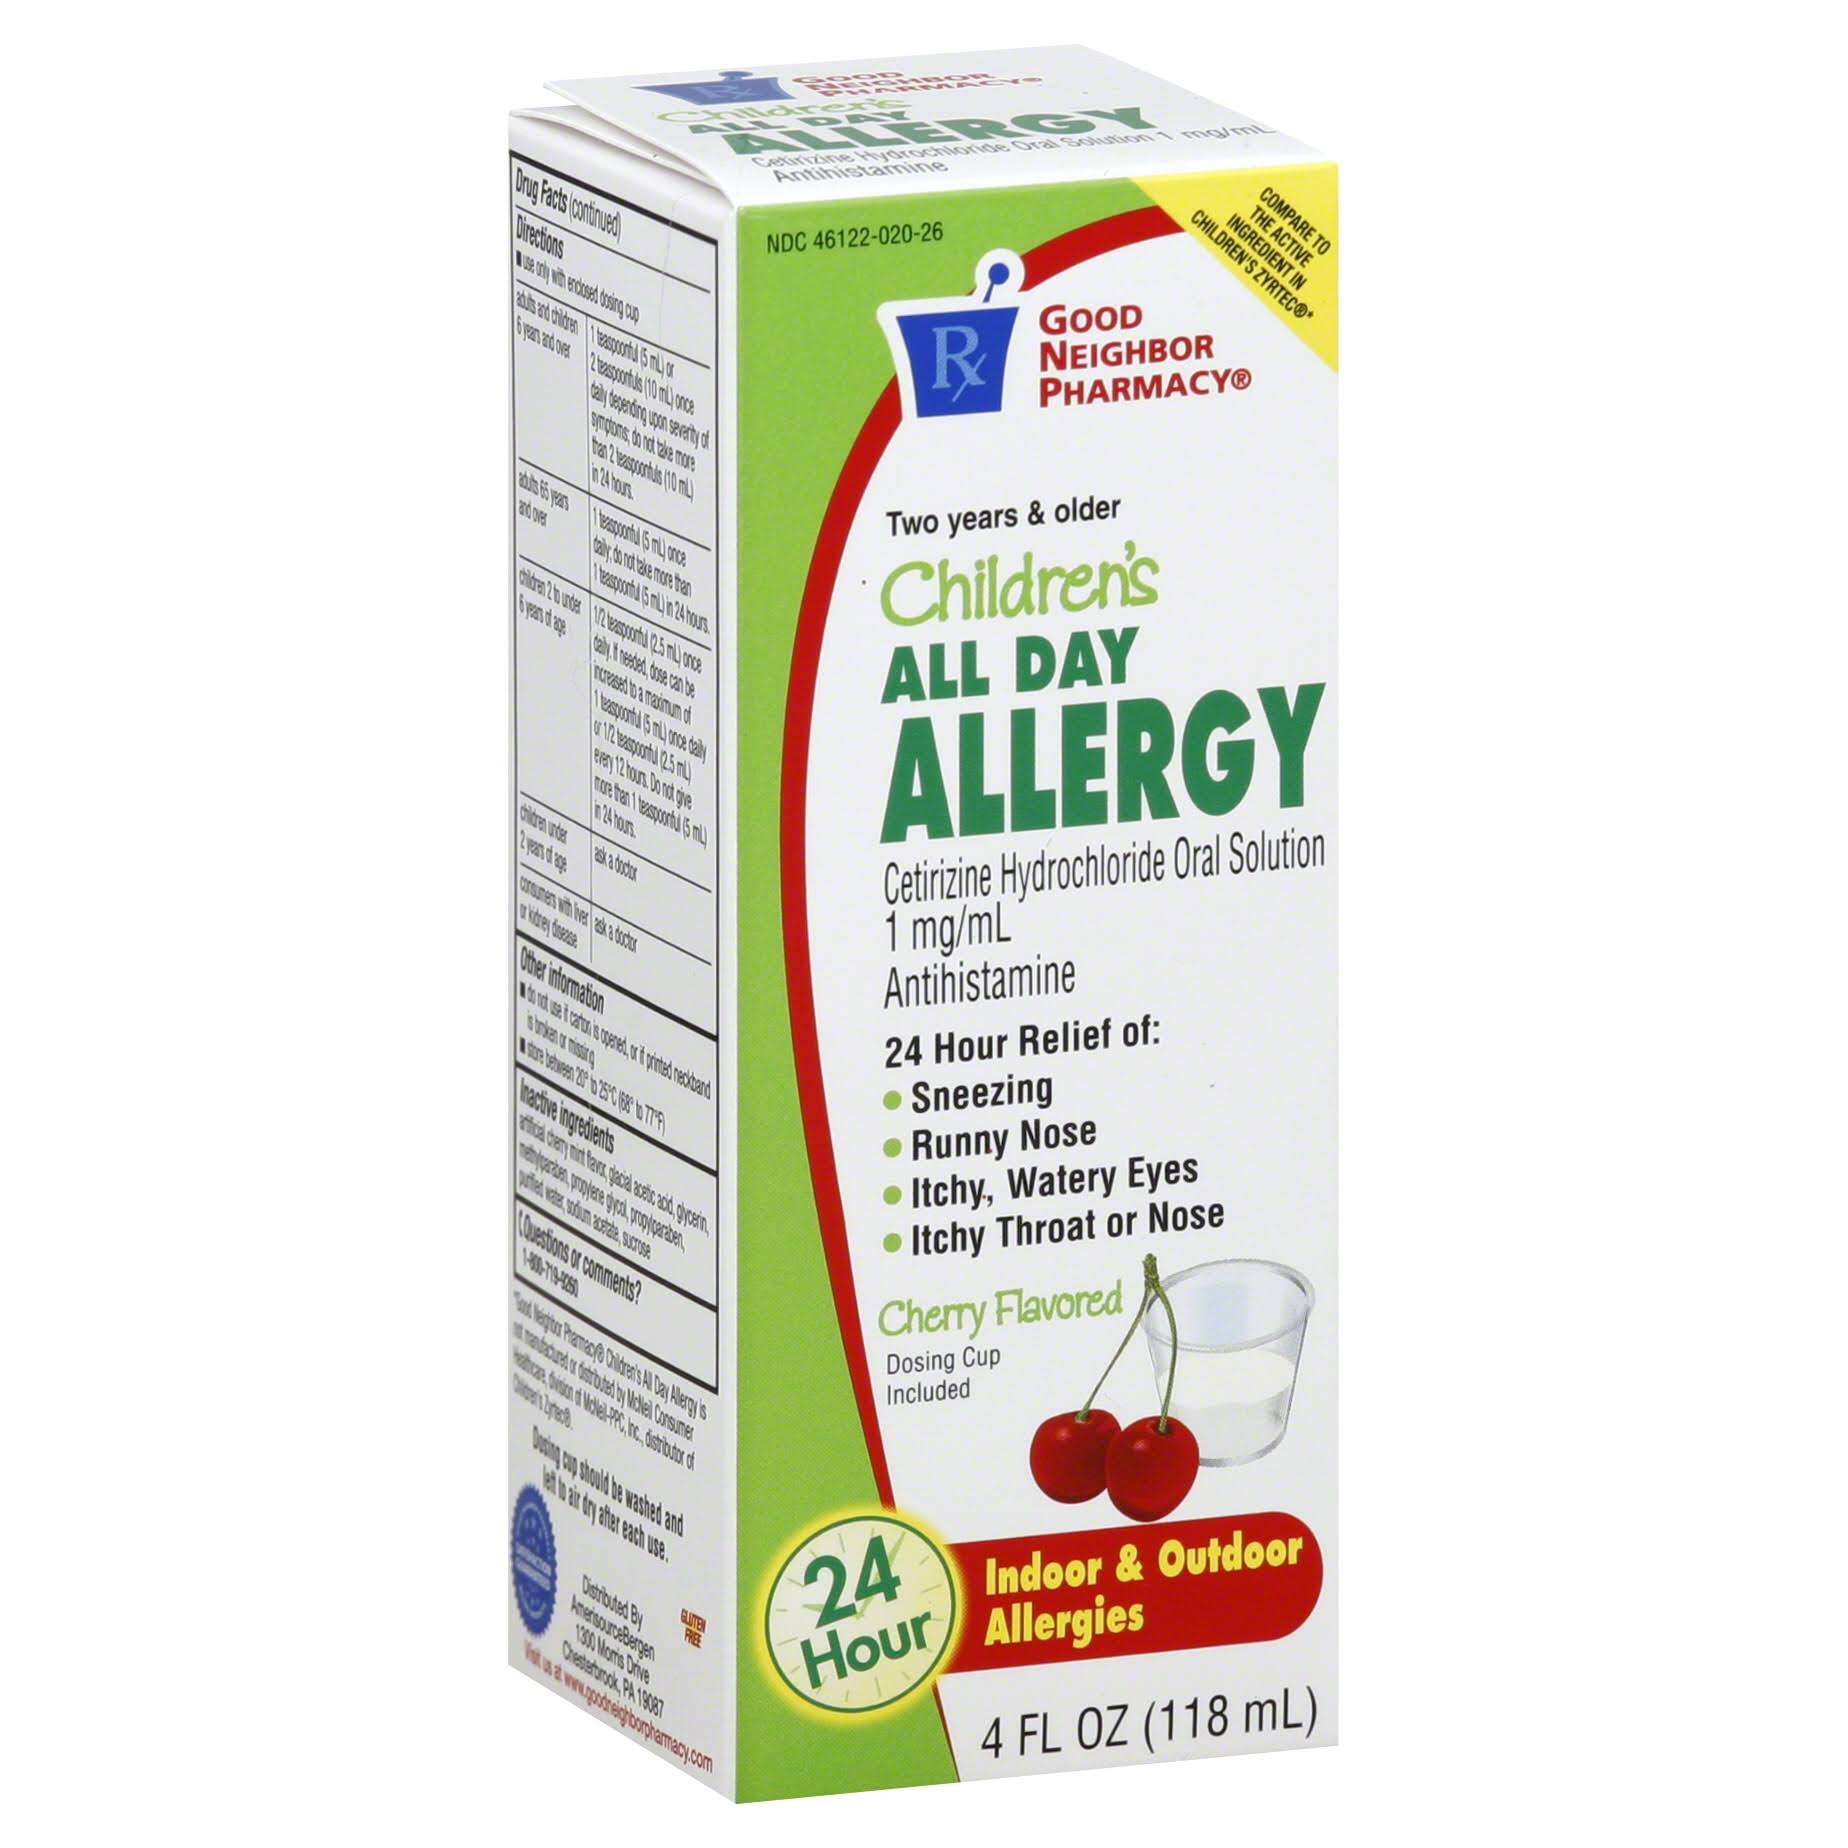 Good Neighbor Pharmacy All Day Allergy, Children's, 1 mg, Cherry Flavored - 4 fl oz